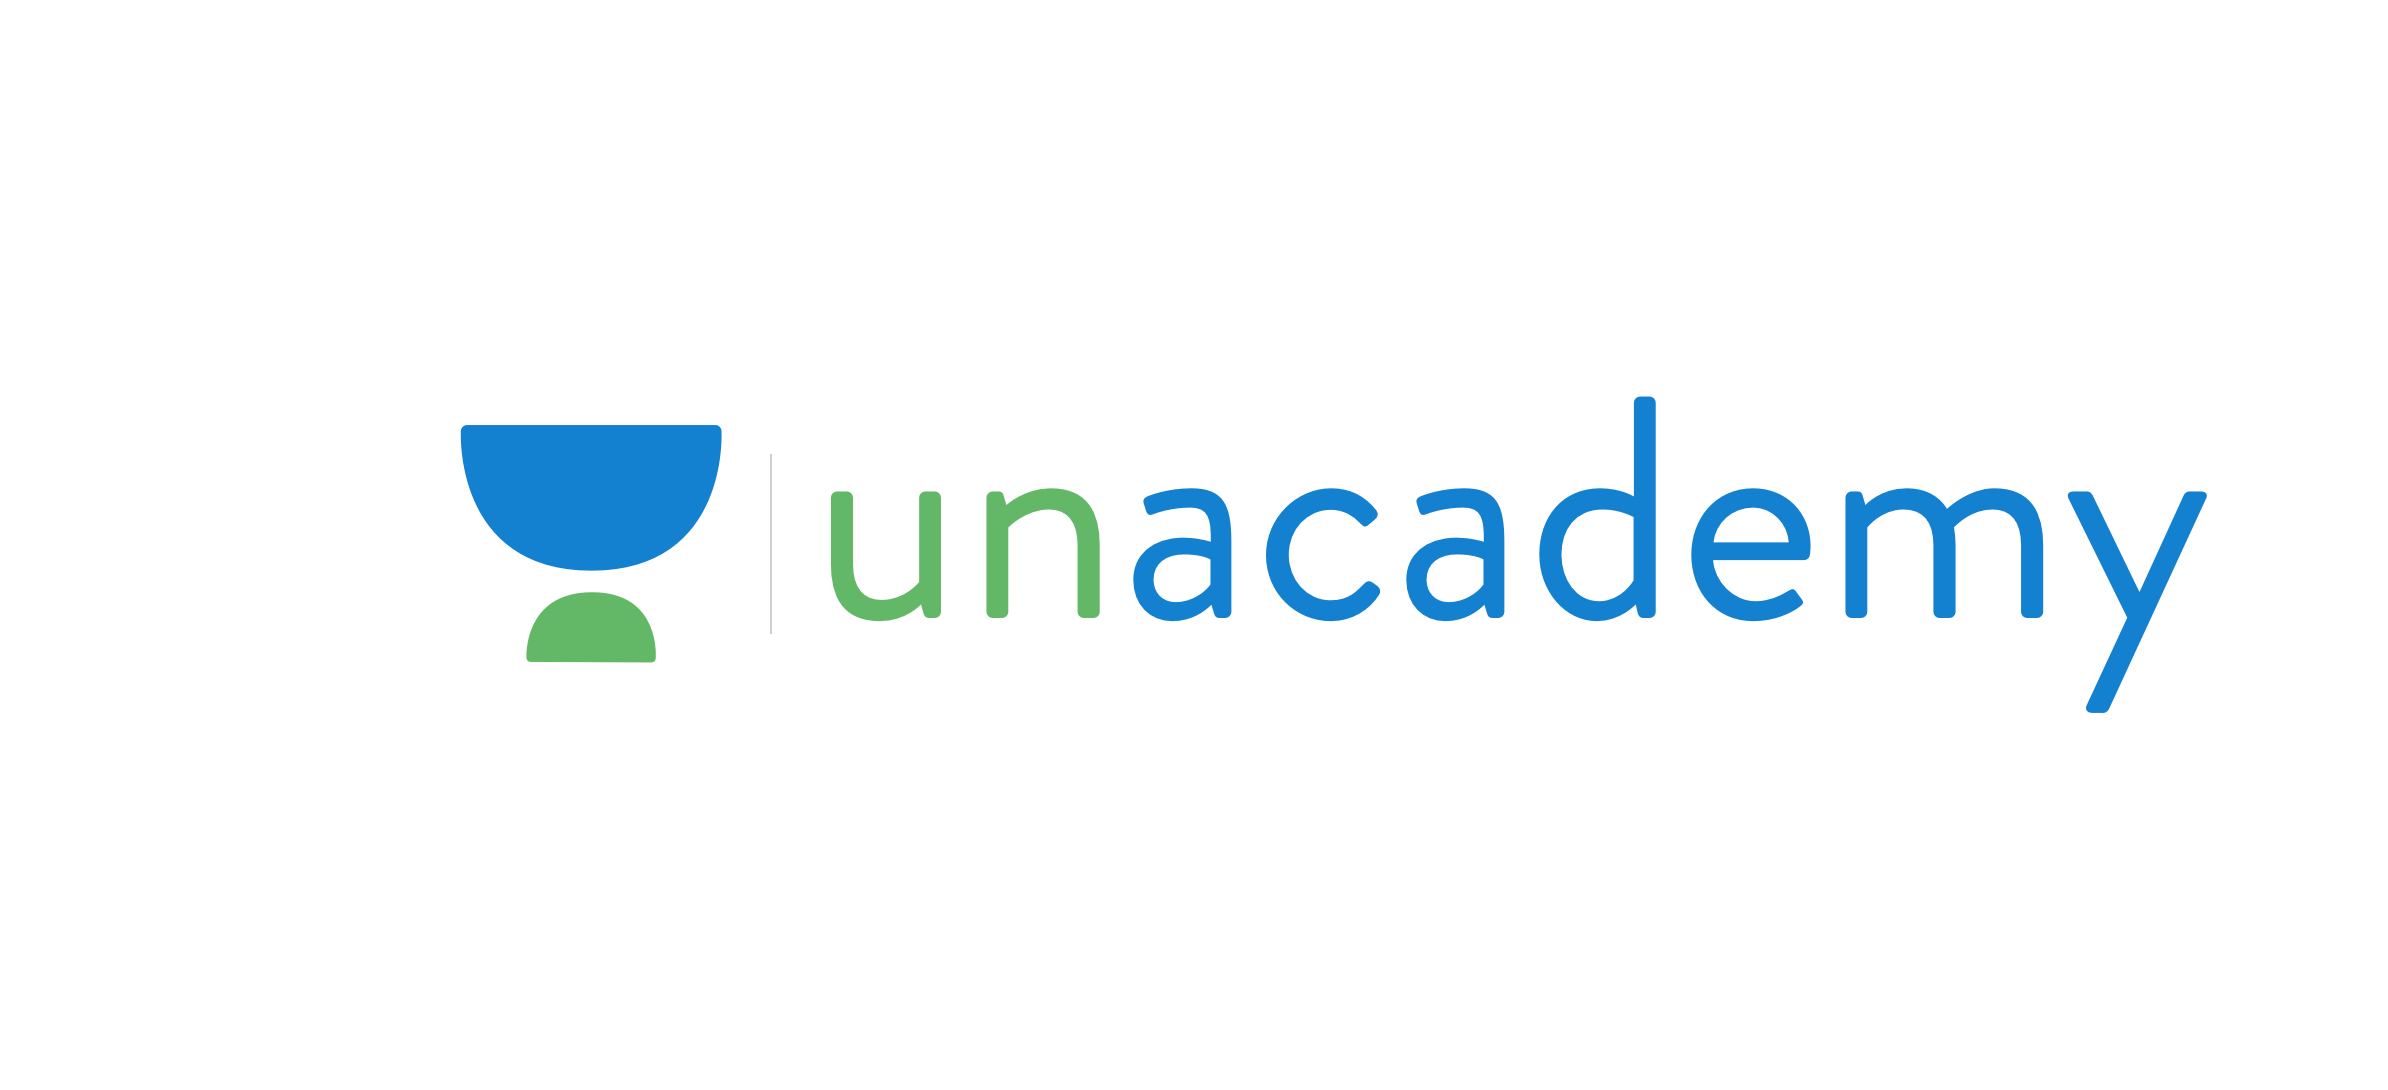 Unacademy - The Free Education Revolution!